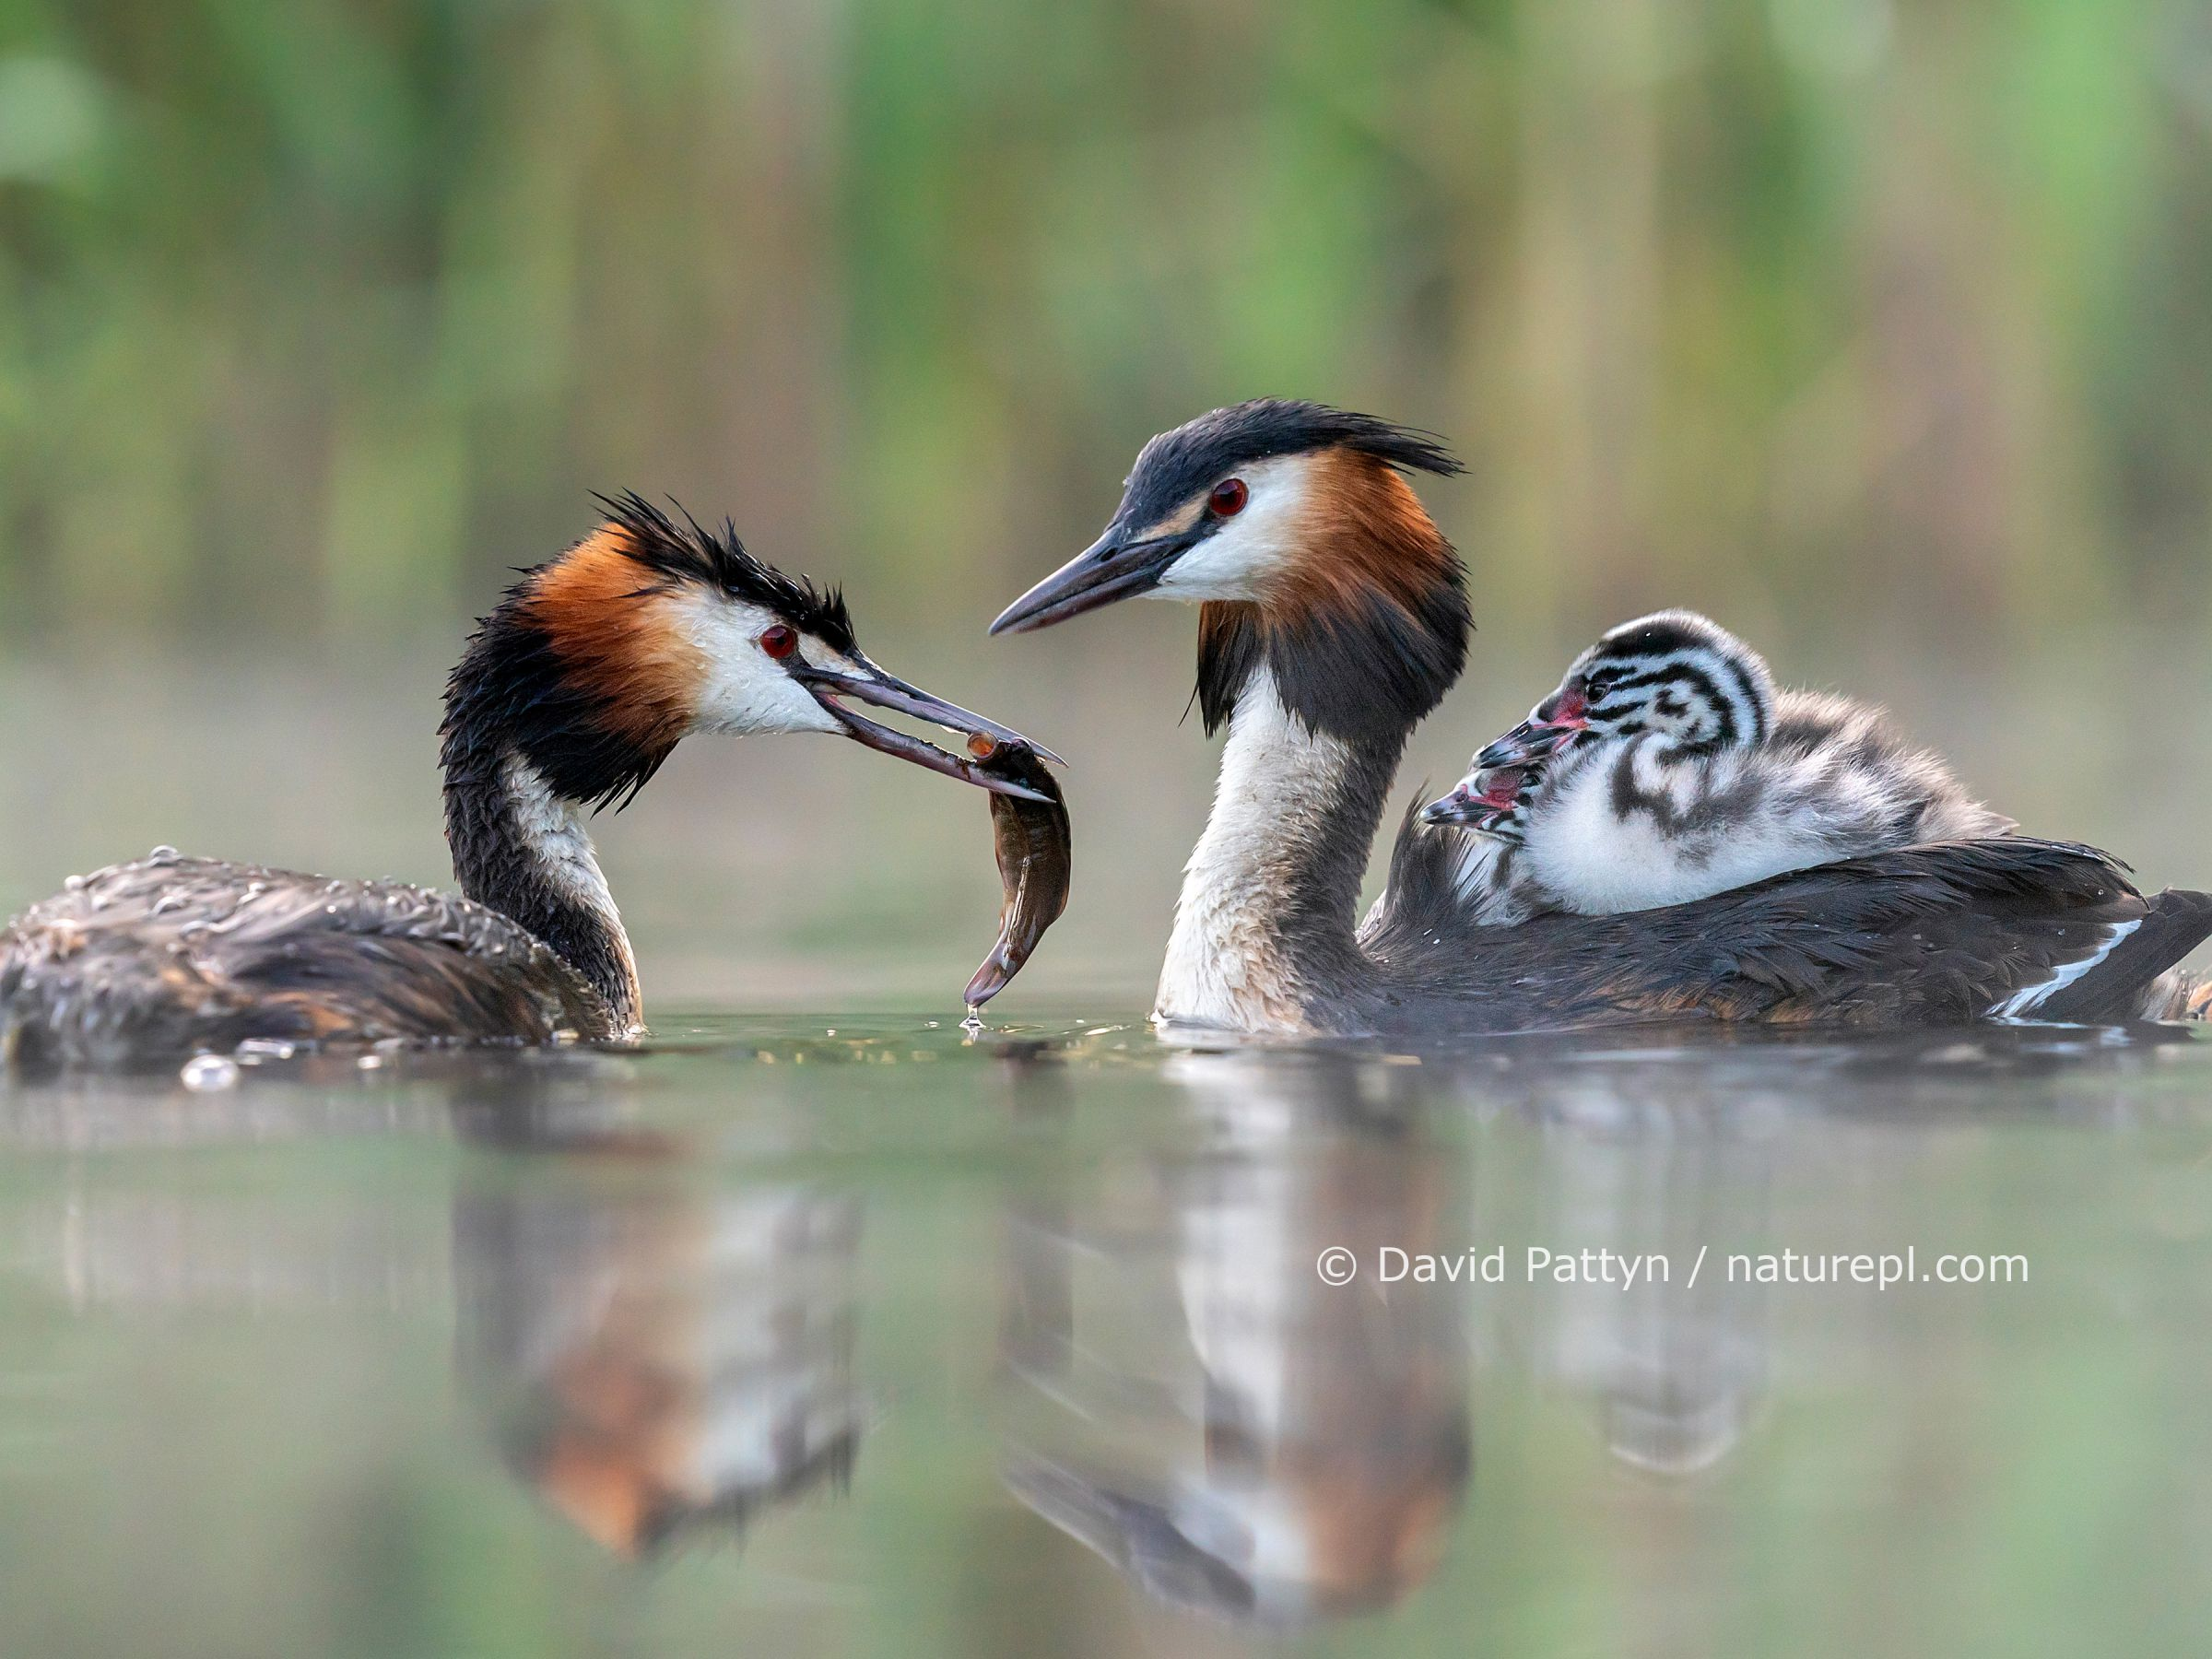 Great crested grebe (Podiceps cristatus) parent bird with chicks on the back while the other parent is feeding the chicks with a fish Valkenhorst Nature Reserve, Valkenswaard, The Netherlands. May